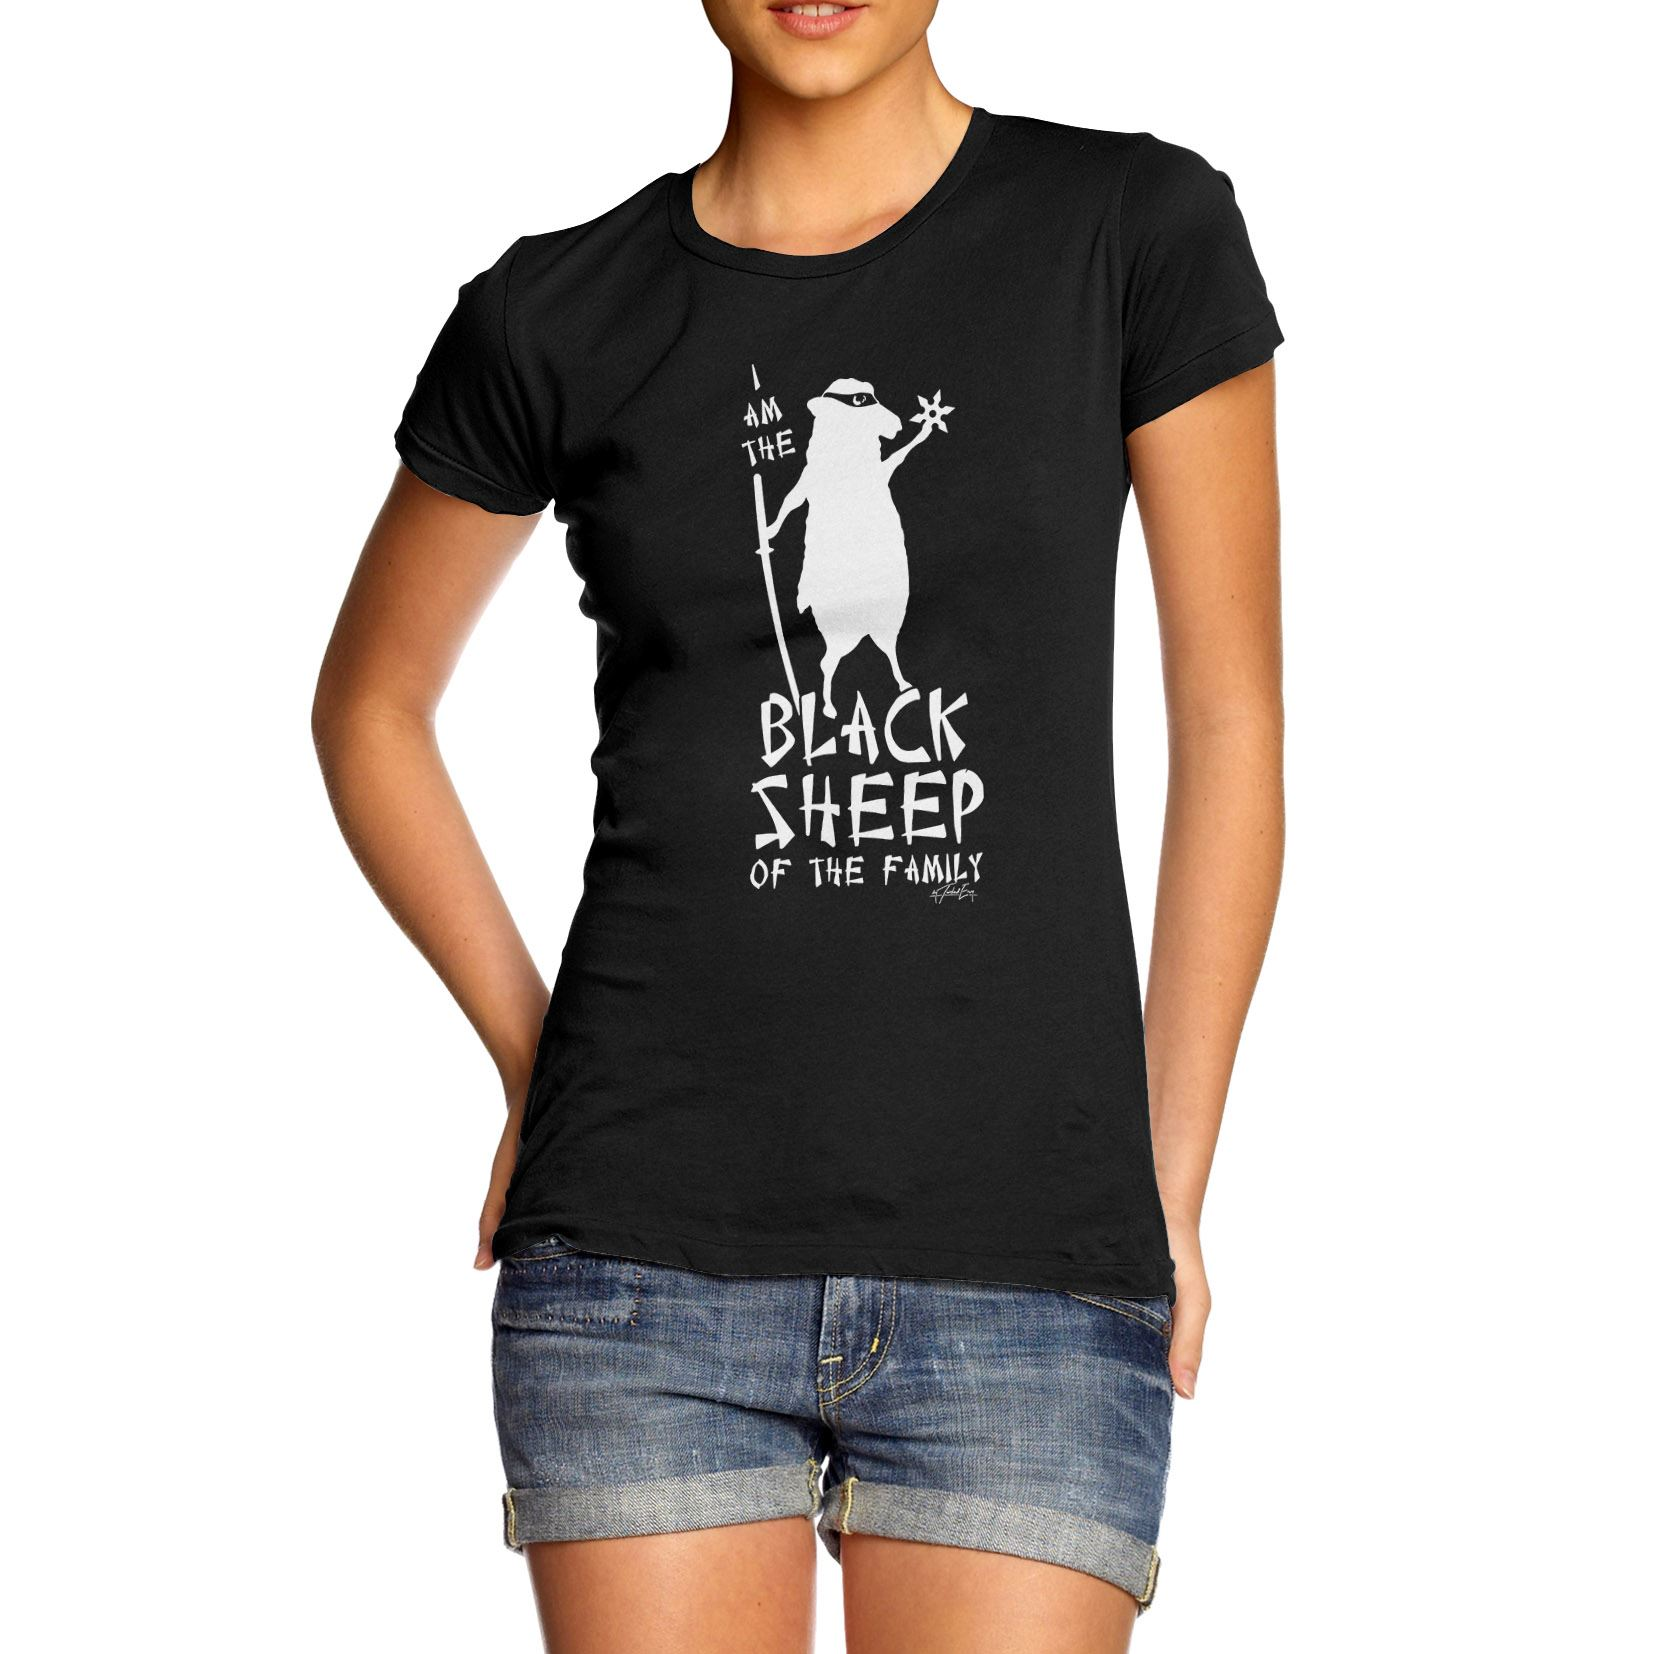 Women's I Am The Black Sheep Of The Family Funny T-Shirt ...